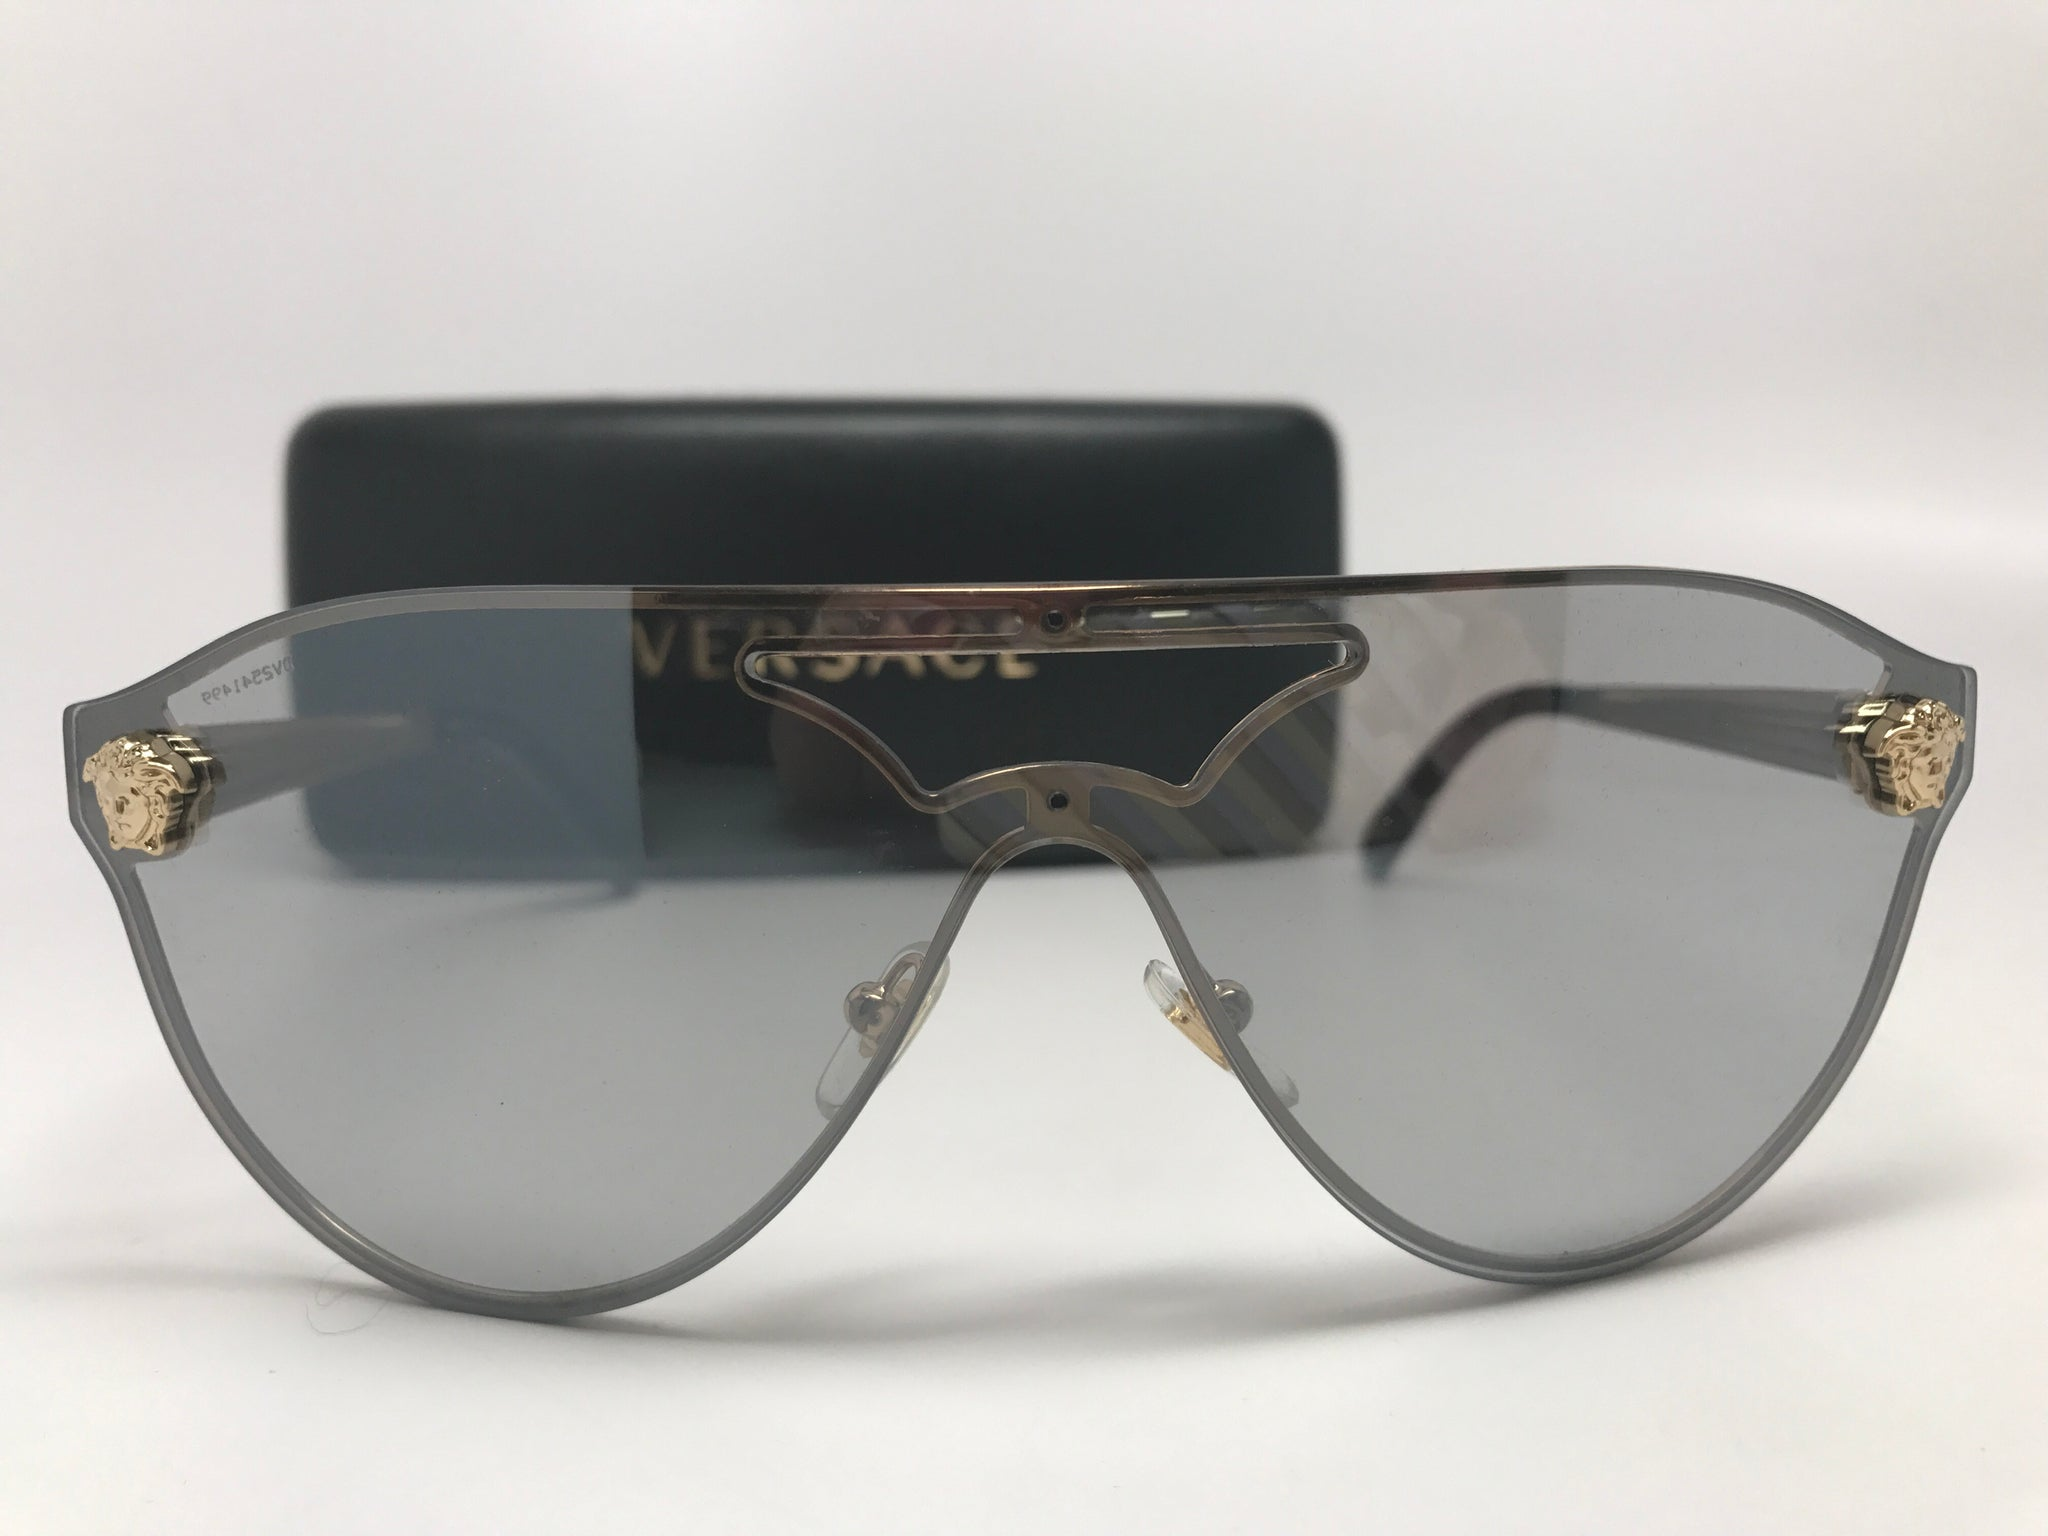 VERSACE METAL FRAME AVIATOR SUNGLASSES